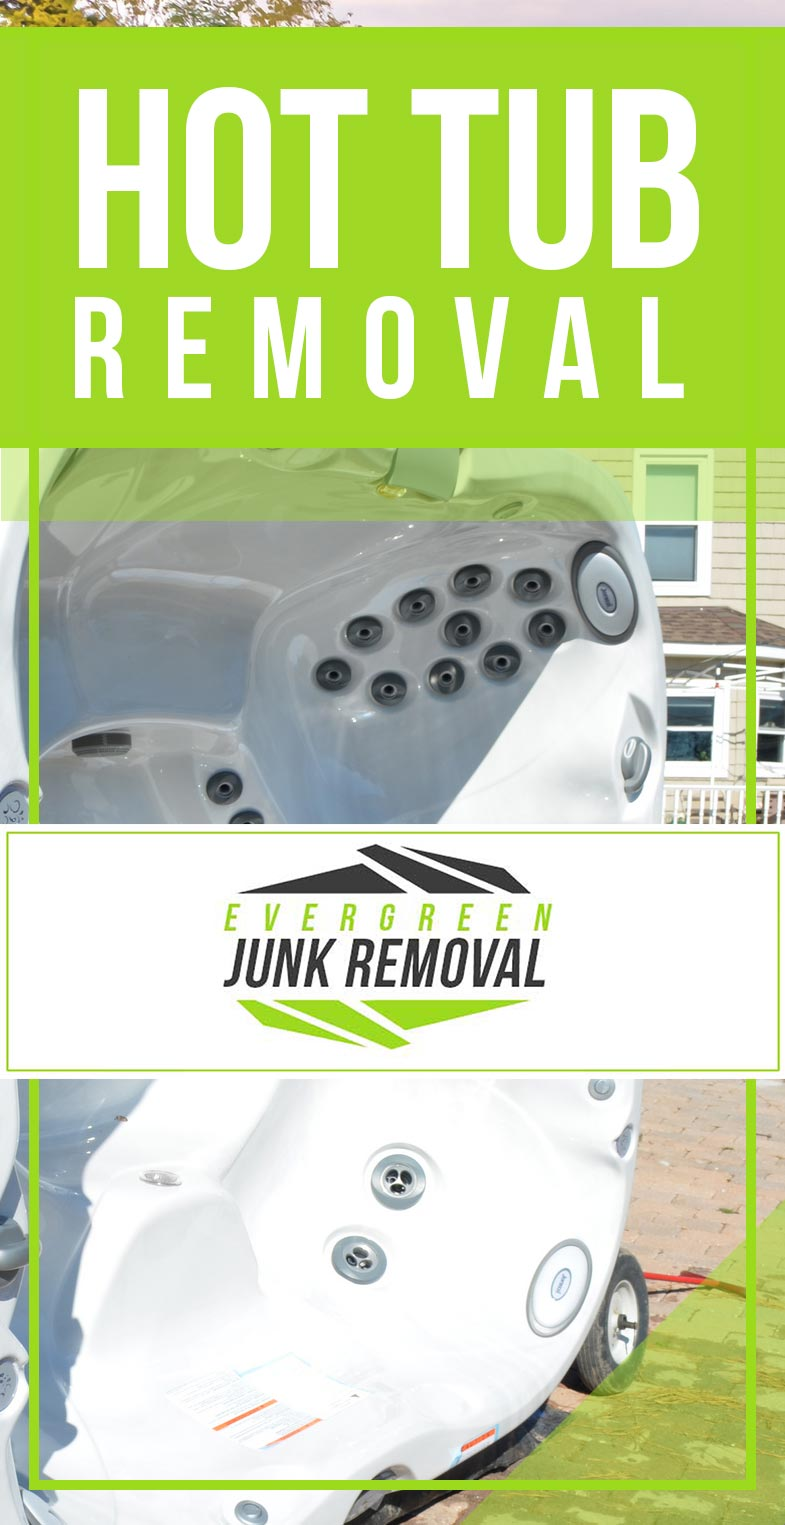 Gretna Hot Tub Removal